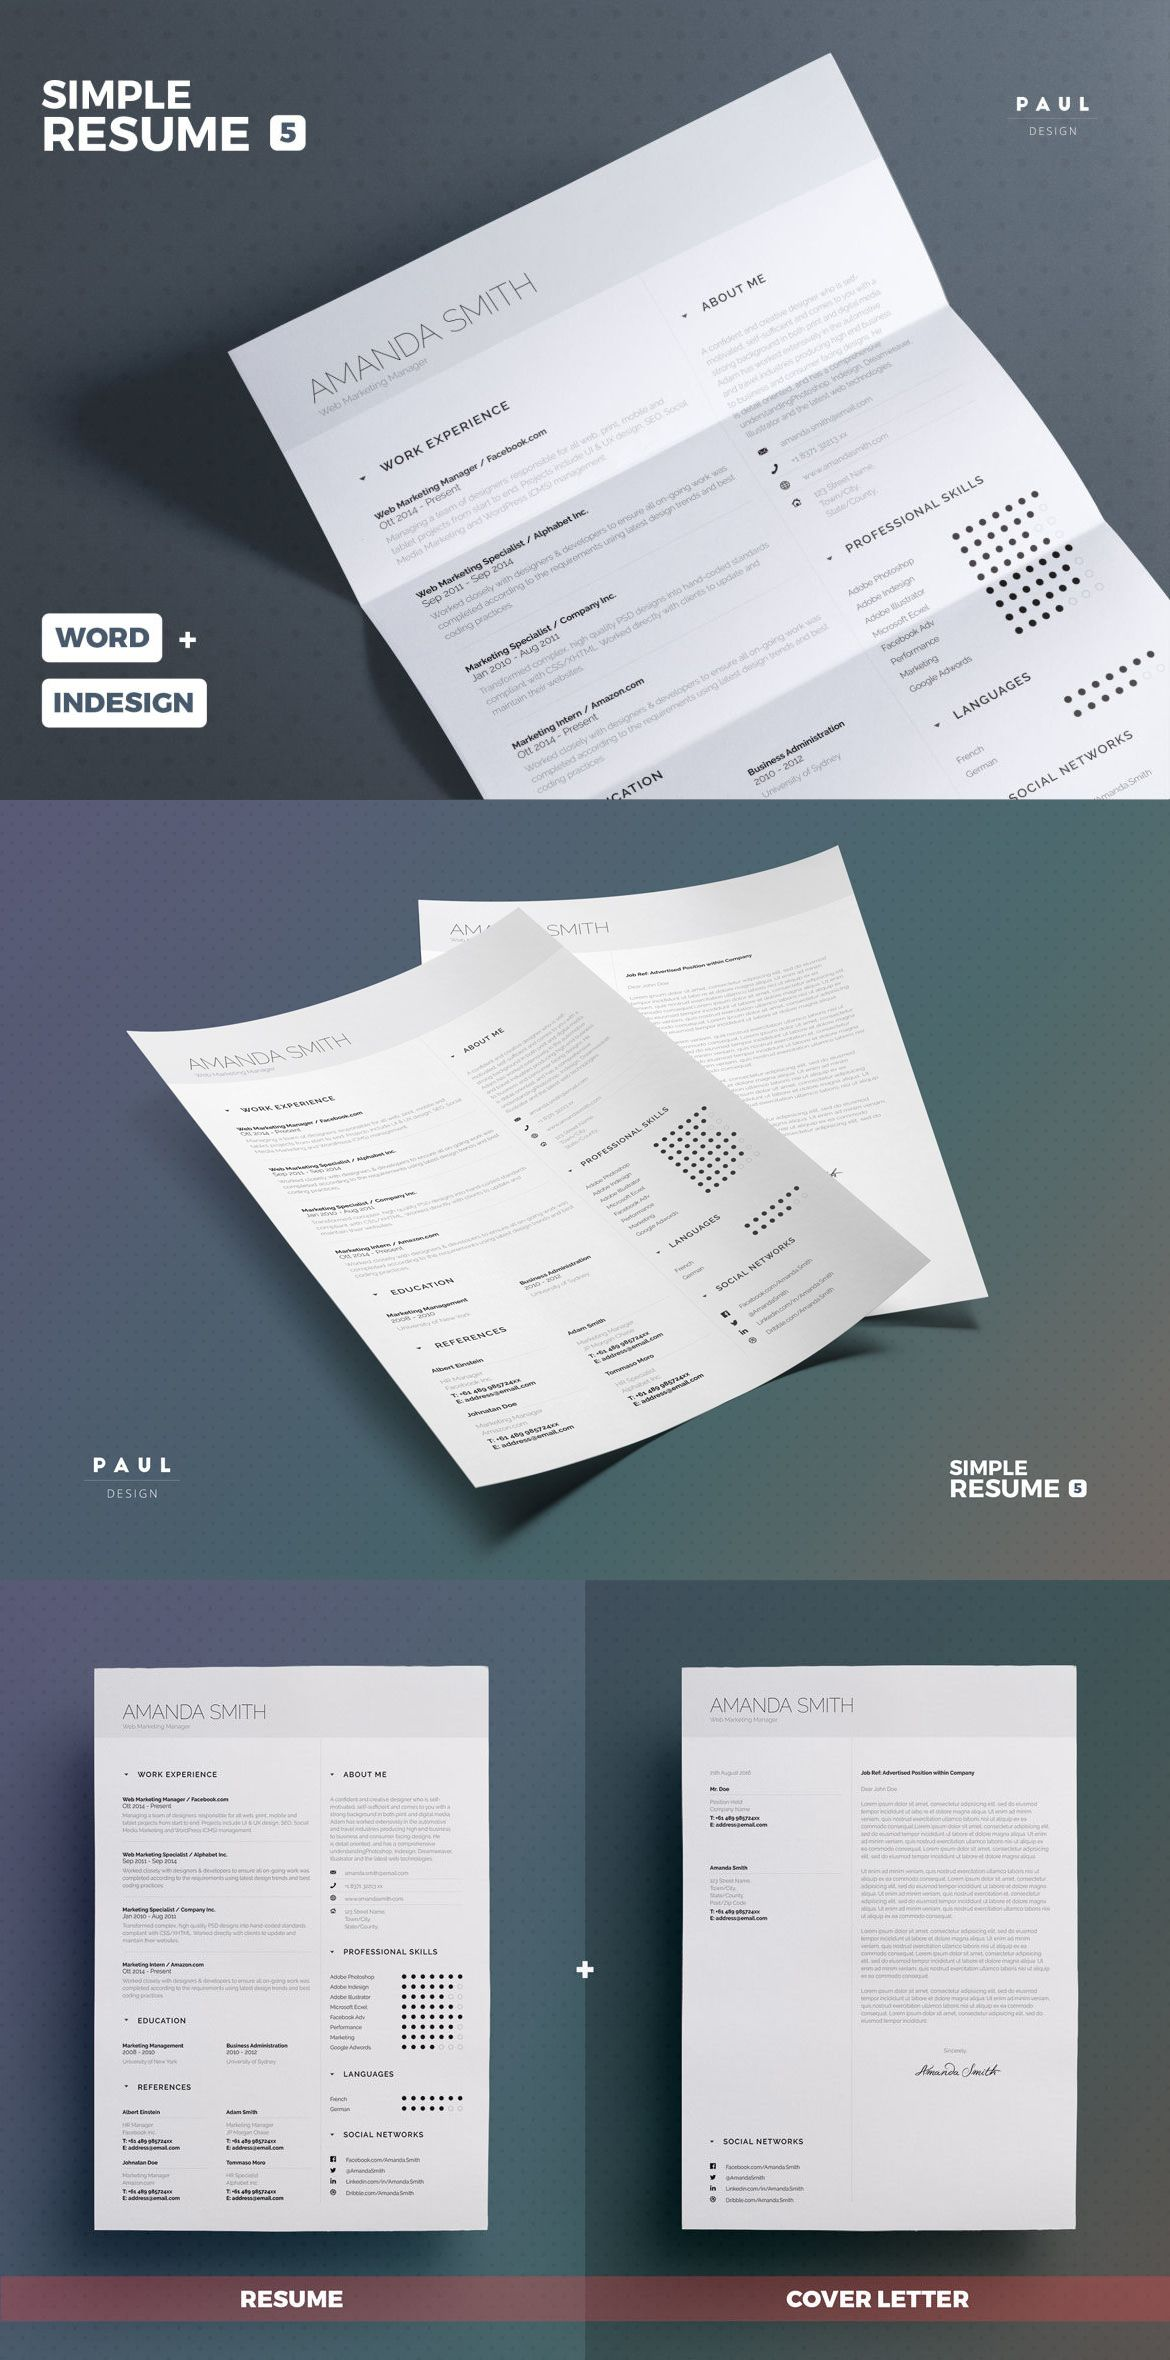 Simple Resume / Cv Template InDesign INDD, MS Word | Design ...